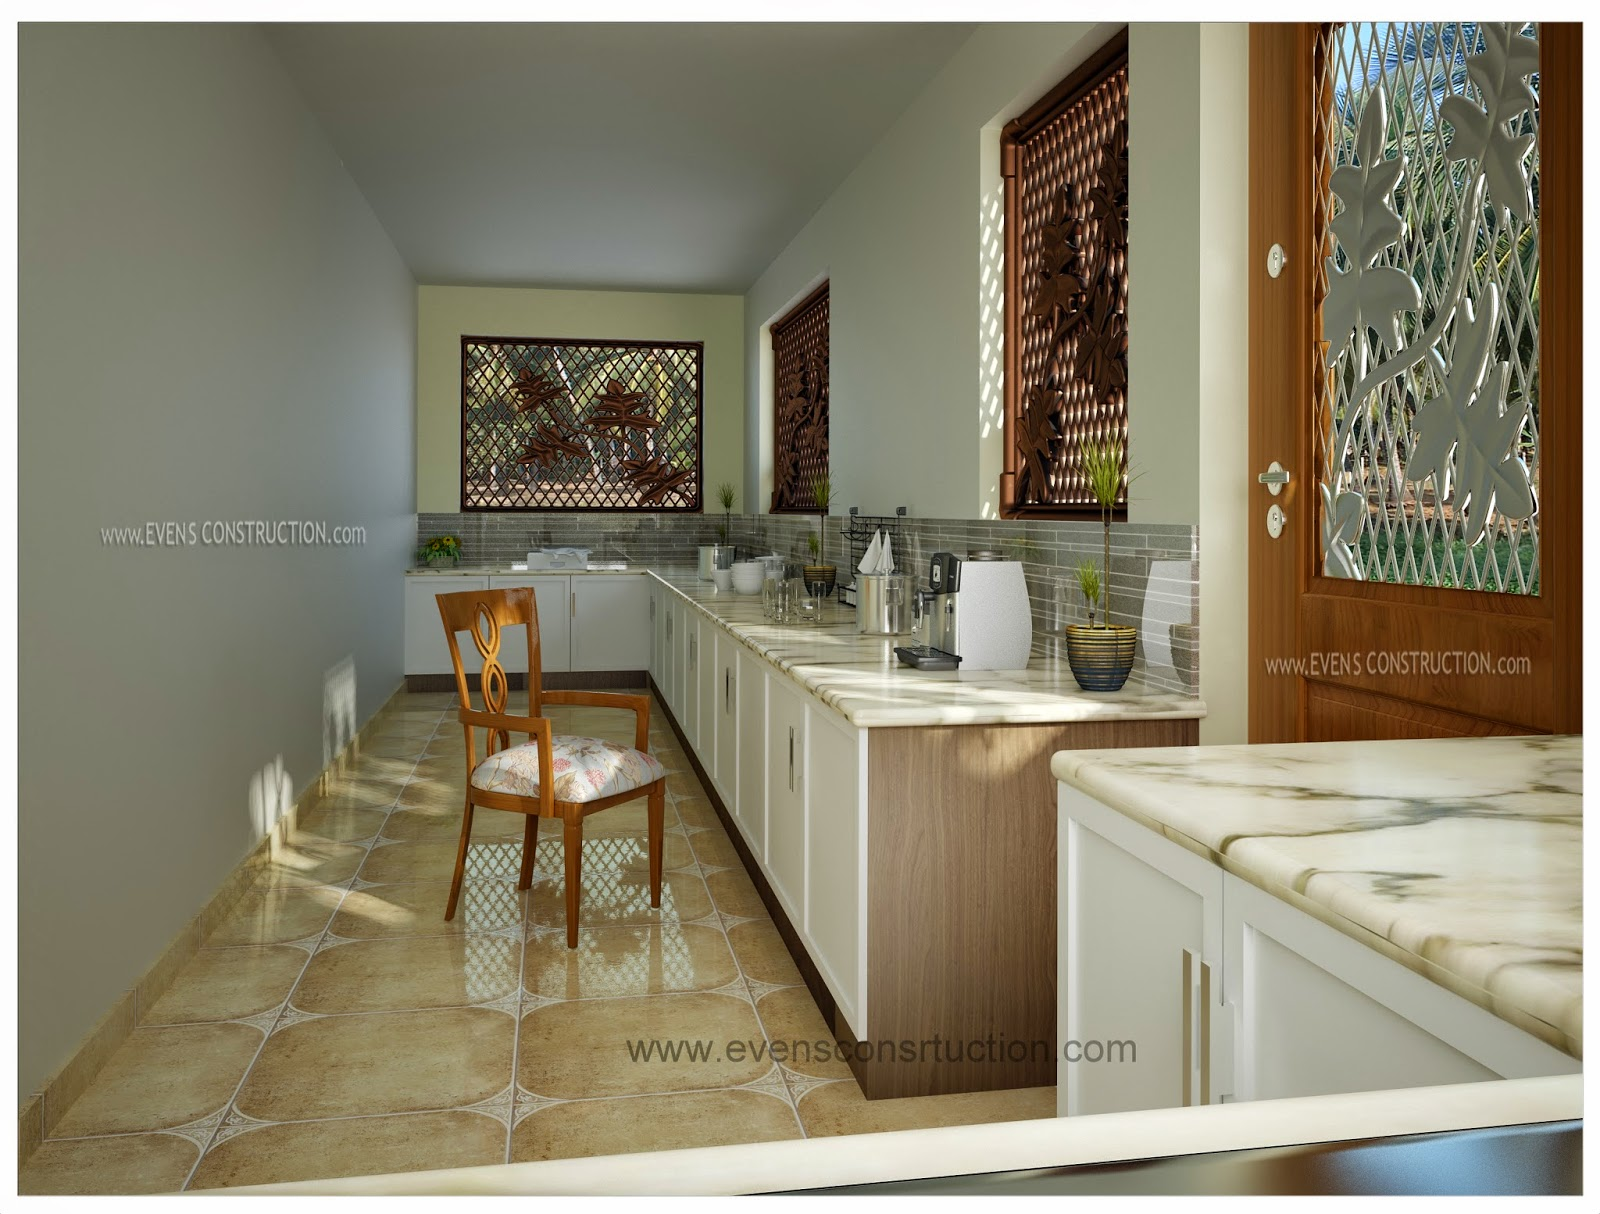 Elegant Kerala Kitchen Work Area Design Freshomedaily